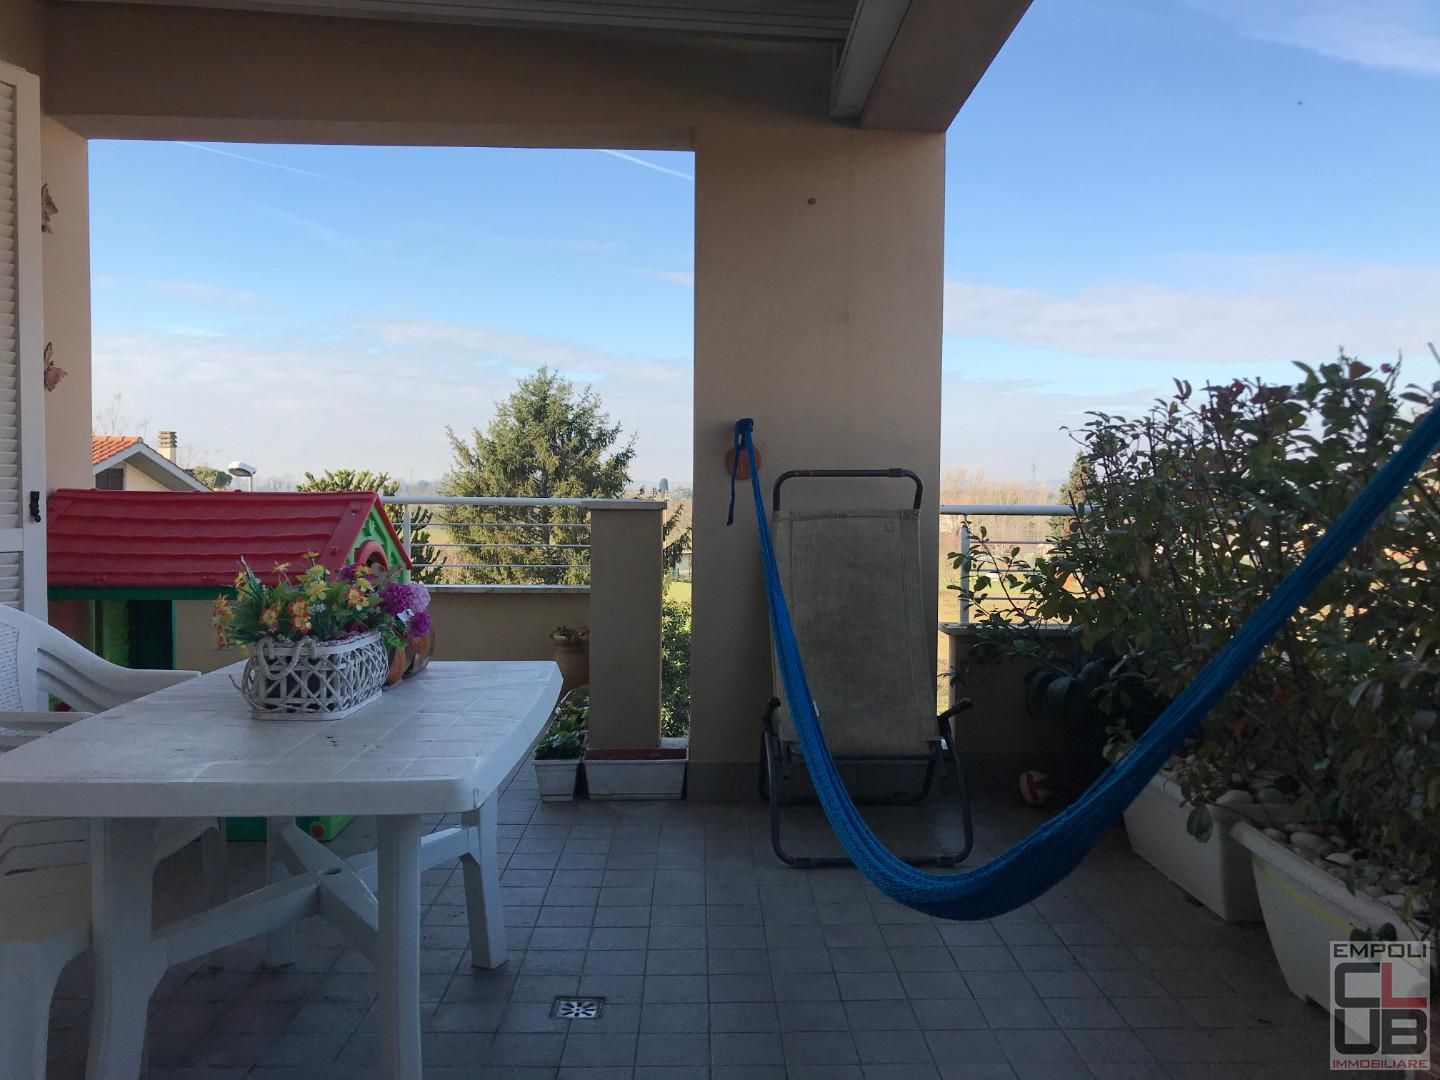 Attic for sale in Empoli (FI)